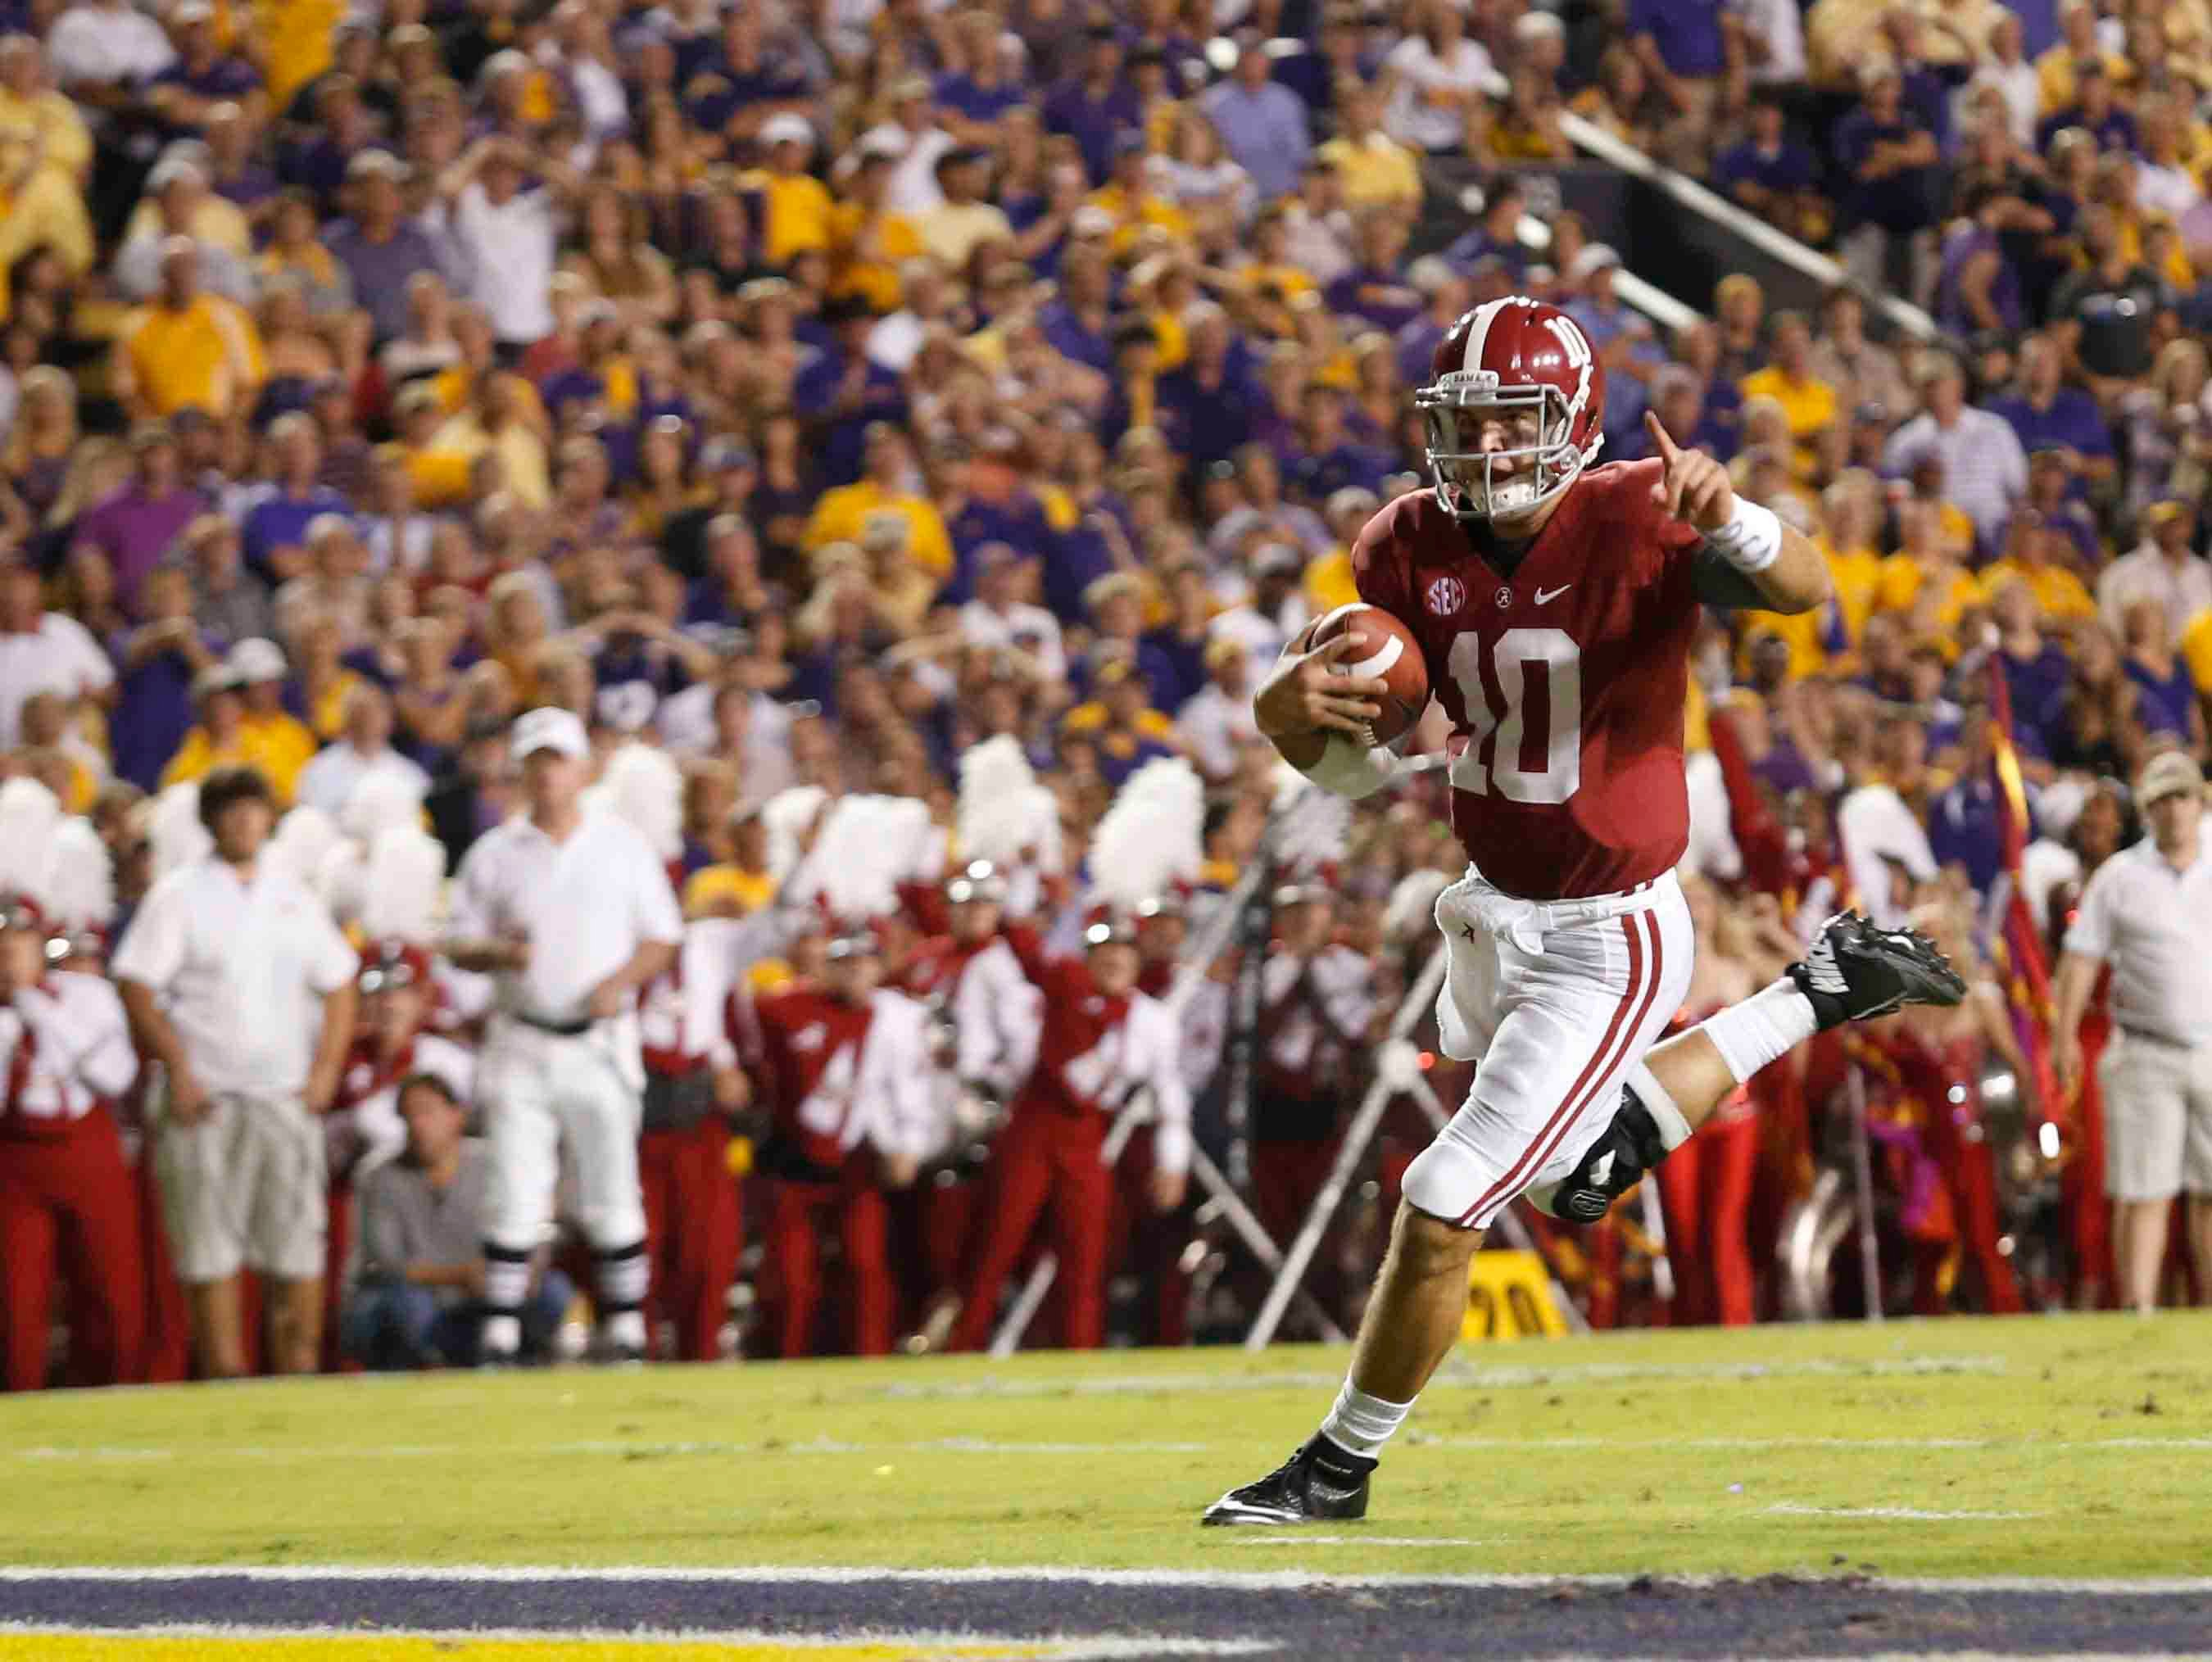 Alabama quarterback AJ McCarron runs for a touchdown